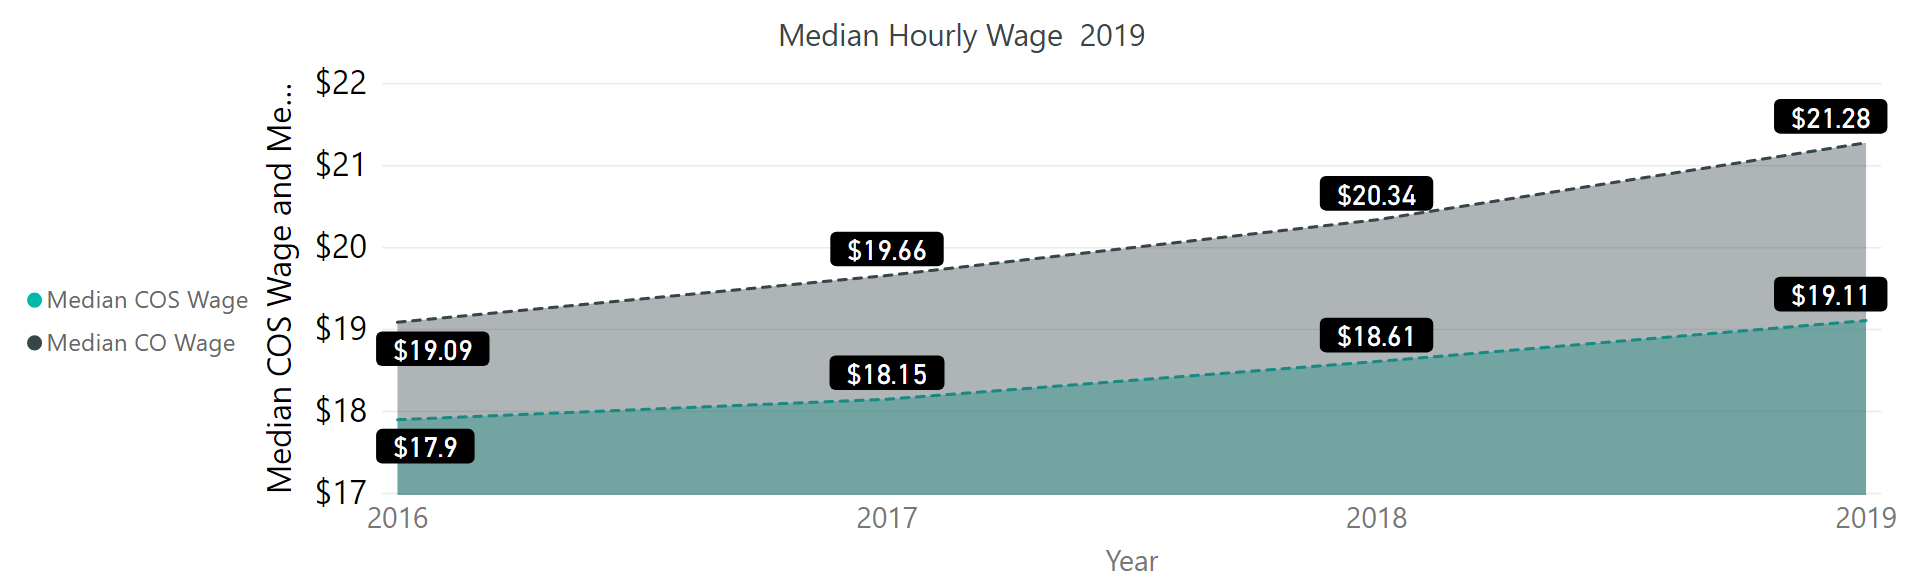 graph showing colorado and colorado springs median wage from 2016 to 2019.. both have increased steadily. Colorado Springs remains about a dollar lower than Colorado.